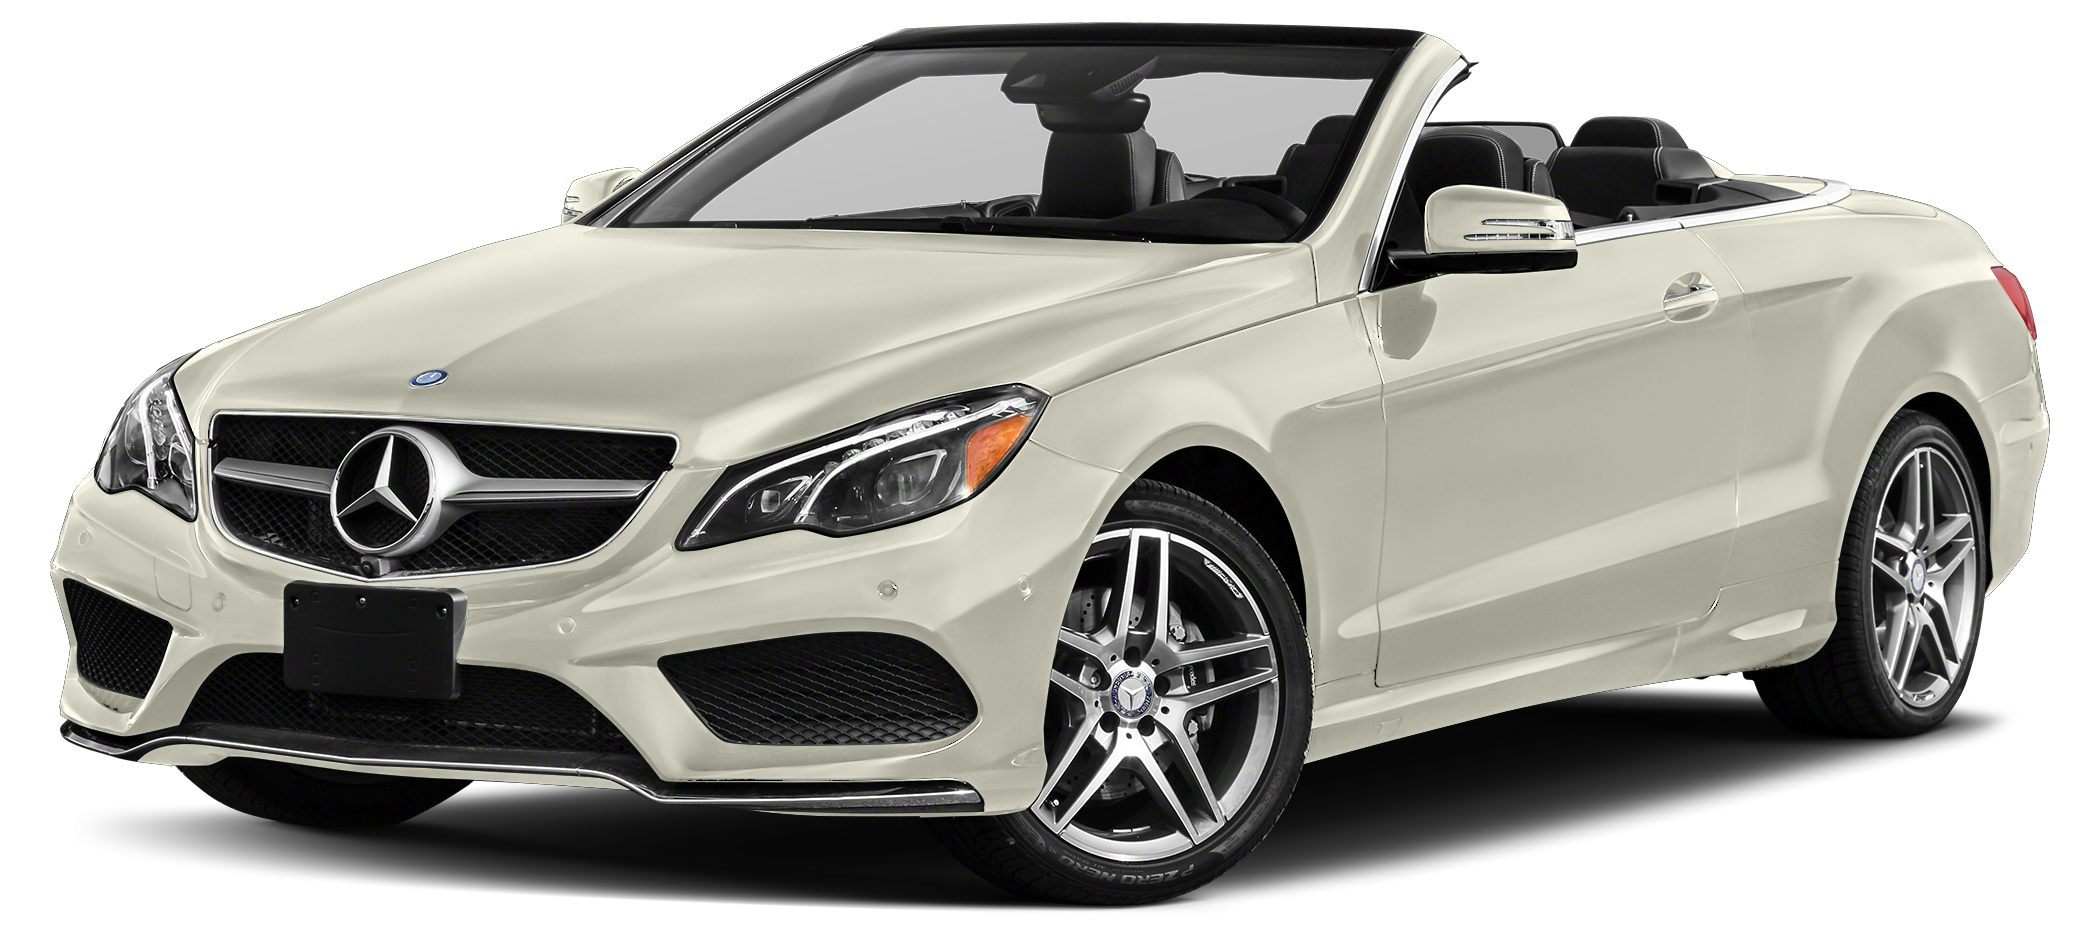 2014 MERCEDES E-Class E350 Enjoy your summer in this beautiful 2014 E350A Convertible Just 25k mi